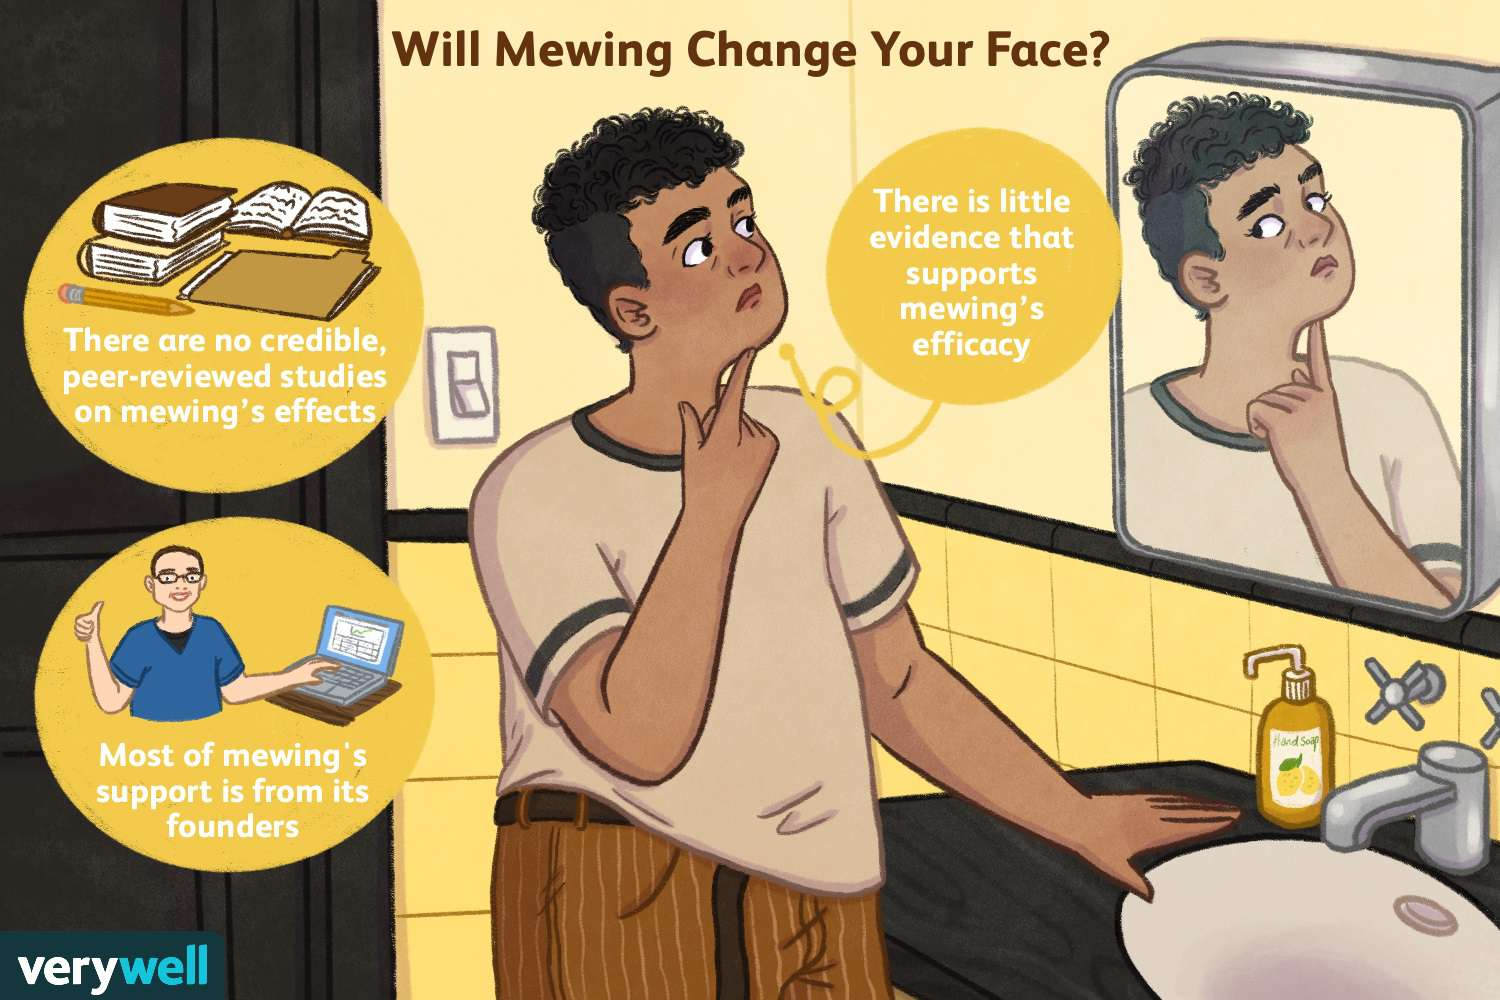 Will Mewing Change Your Face?